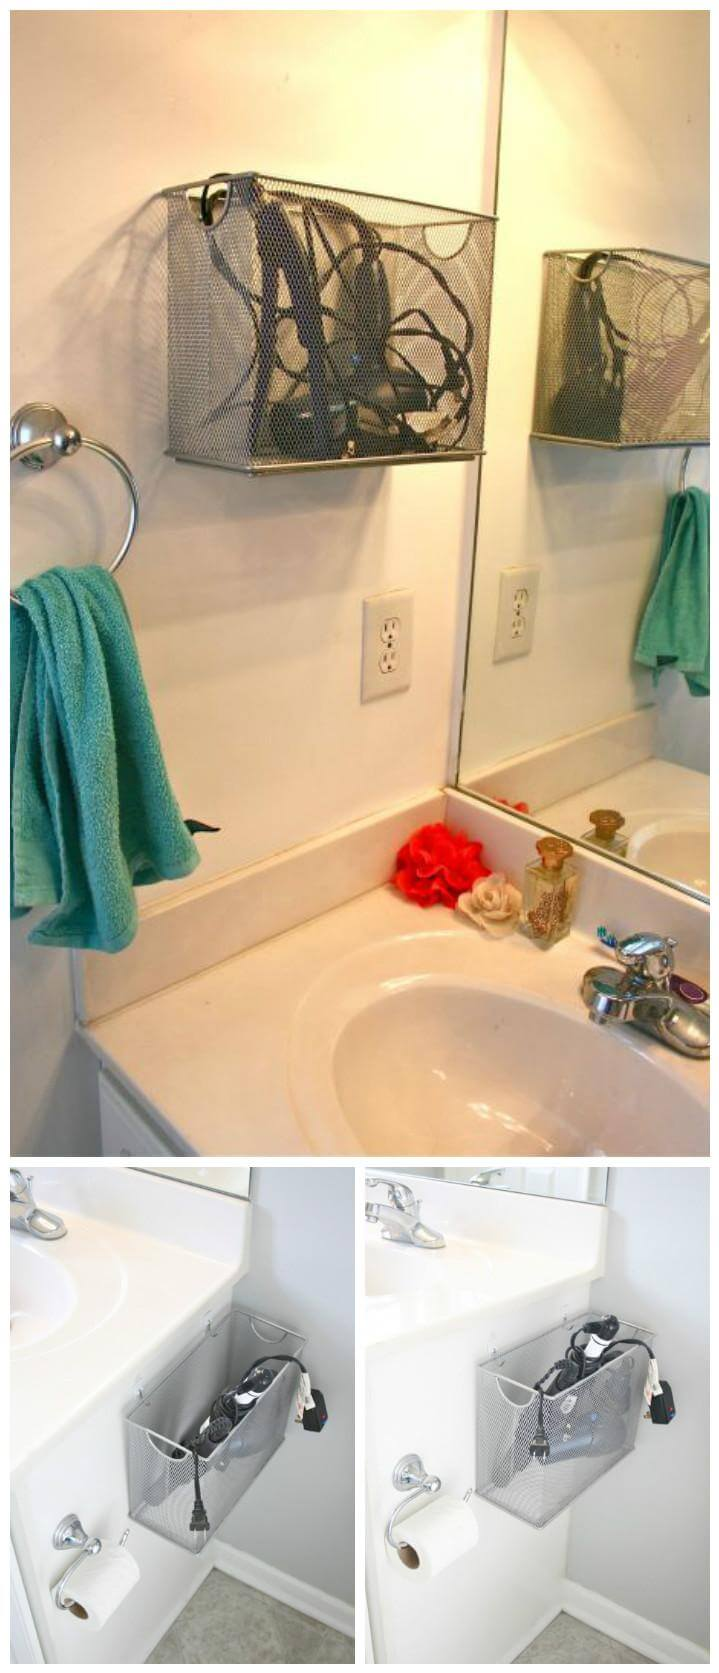 50 diy bathroom projects to remodel step by step page 6 for Diy kitchen remodel steps